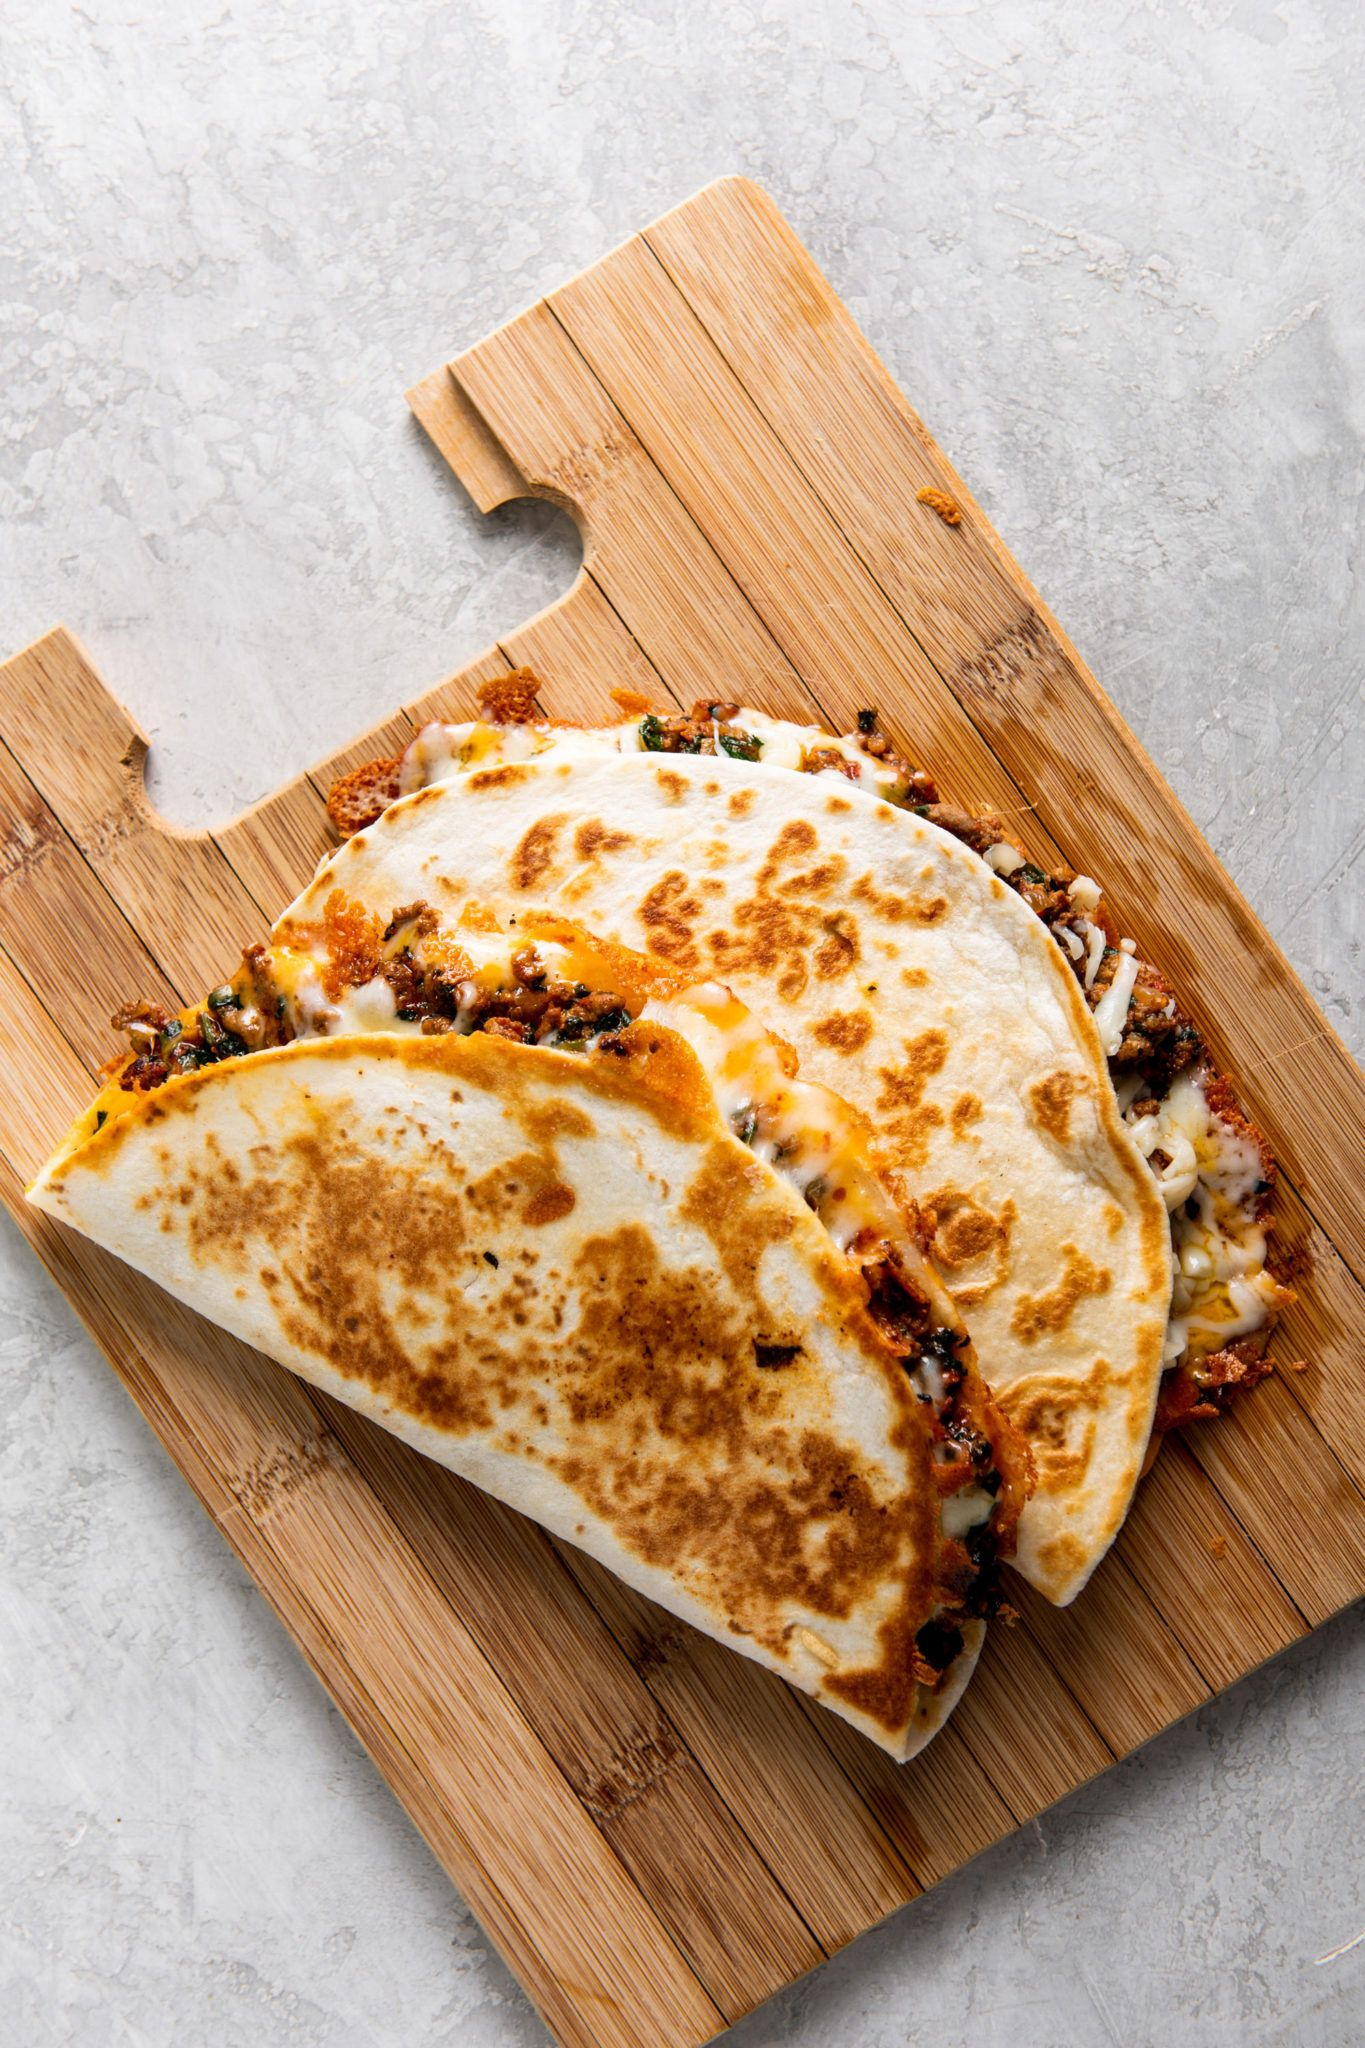 Cheesy Ground Beef Quesadillas Recipe The Mom 100 In 2020 Beef Quesadillas Ground Beef Quesadillas Recipes